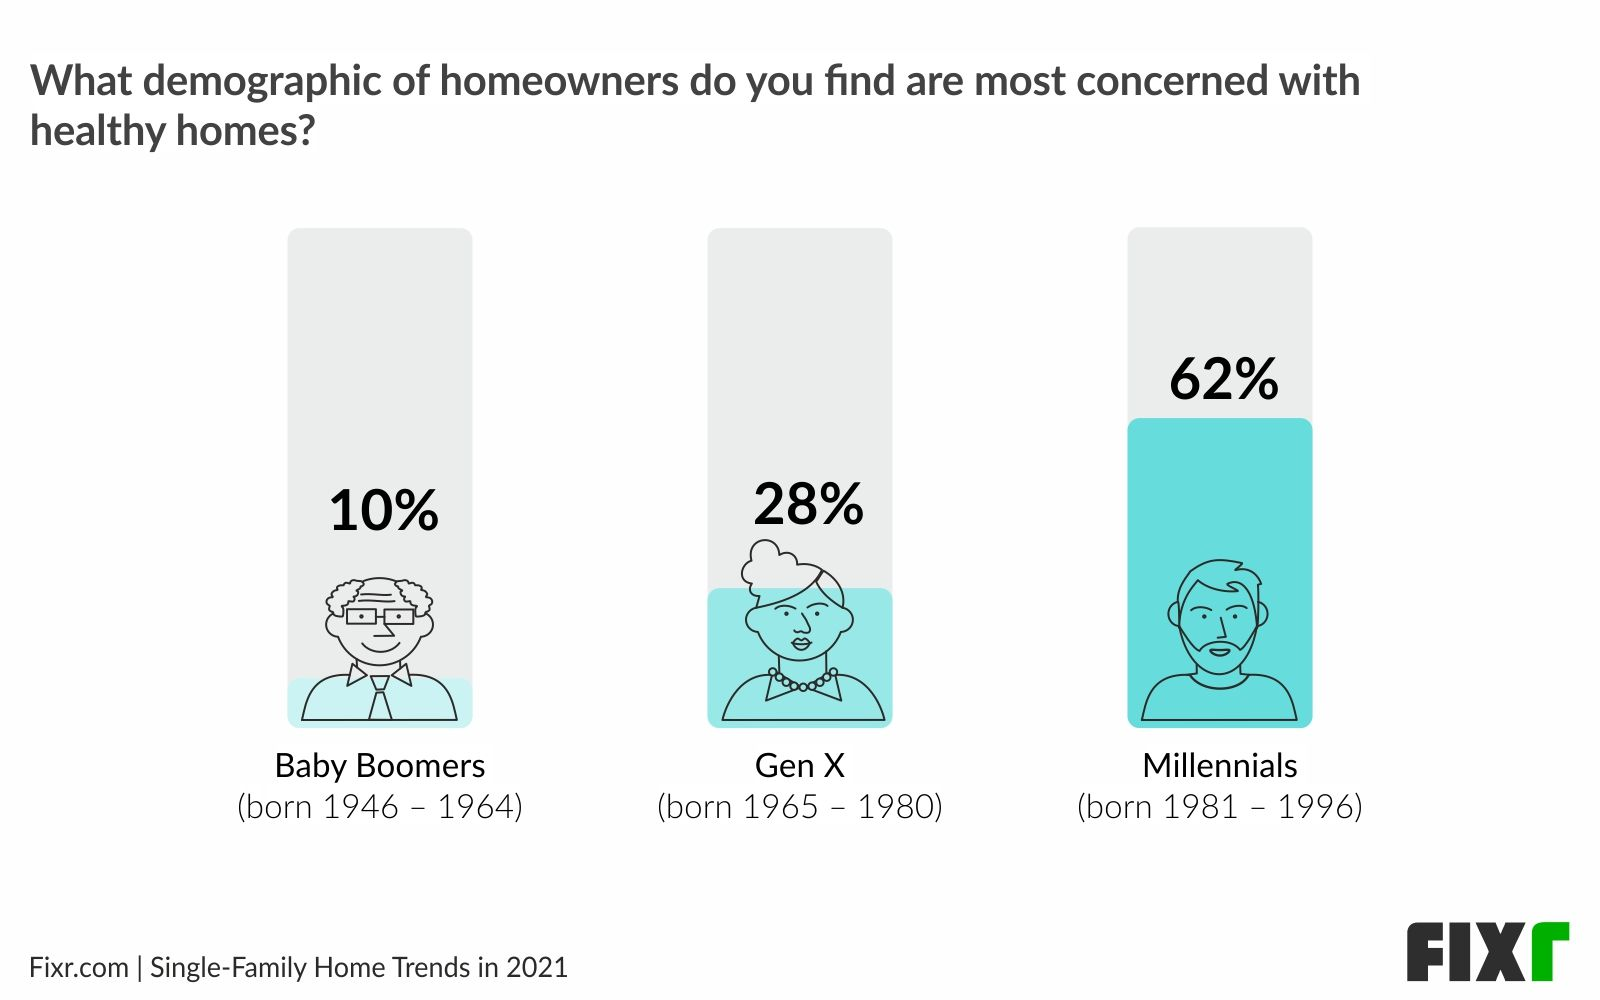 Who is most concerned about having a healthy home?